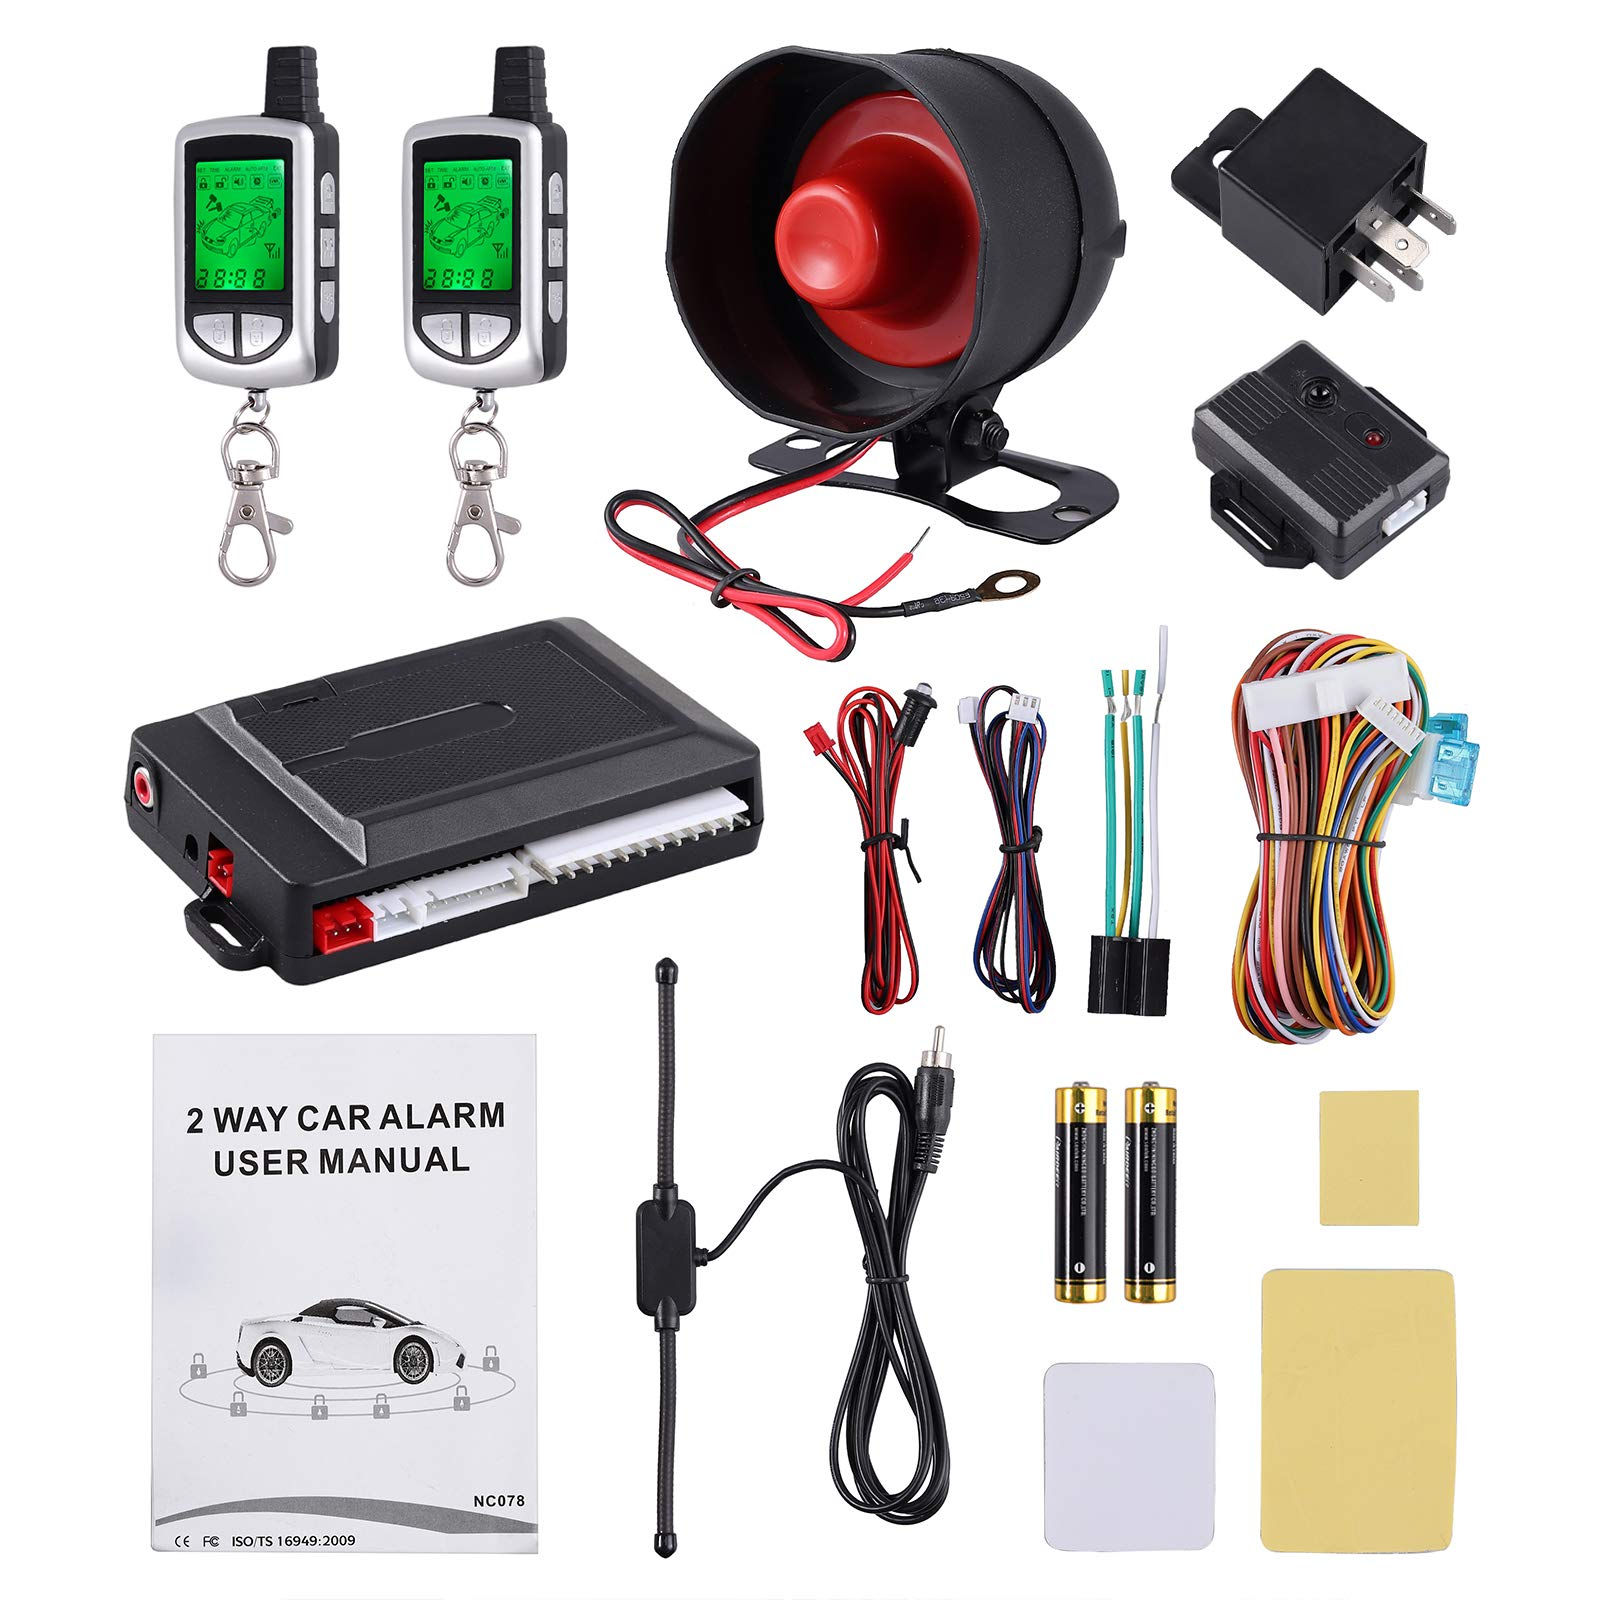 eSynic 2 Way Car Alarm Security System 12V Keyless Entry Ignition Push Button Starter Pager with Two Way LCD Remote Control Vehicle Security System Kit